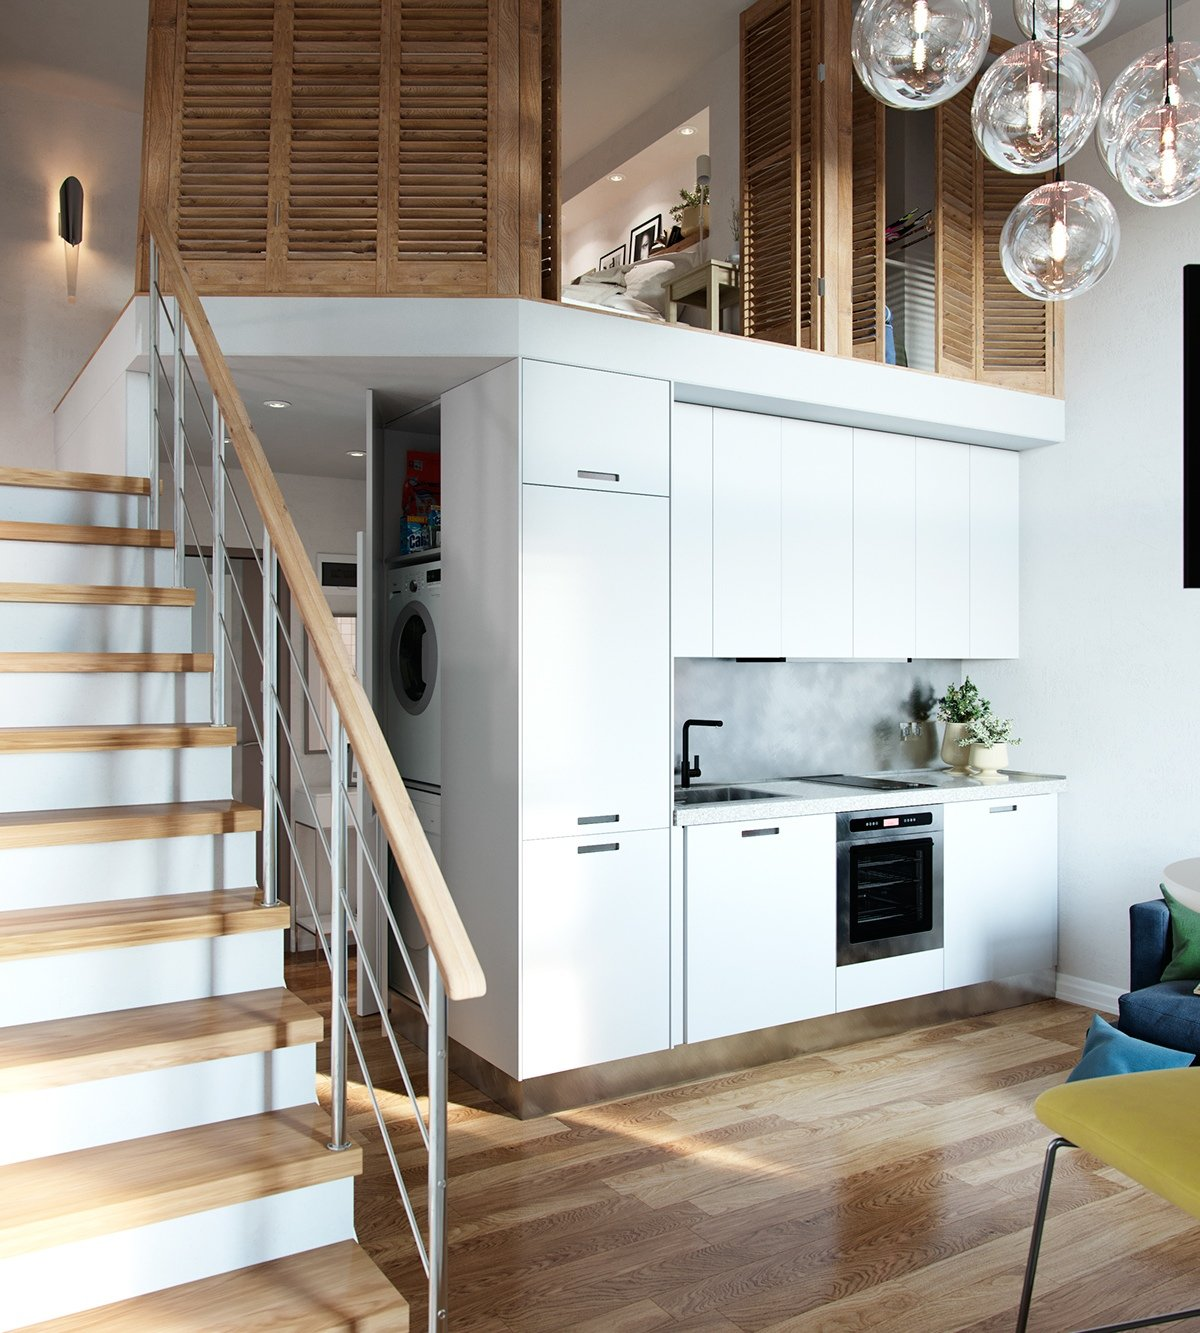 Loft House Design: Small Homes That Use Lofts To Gain More Floor Space